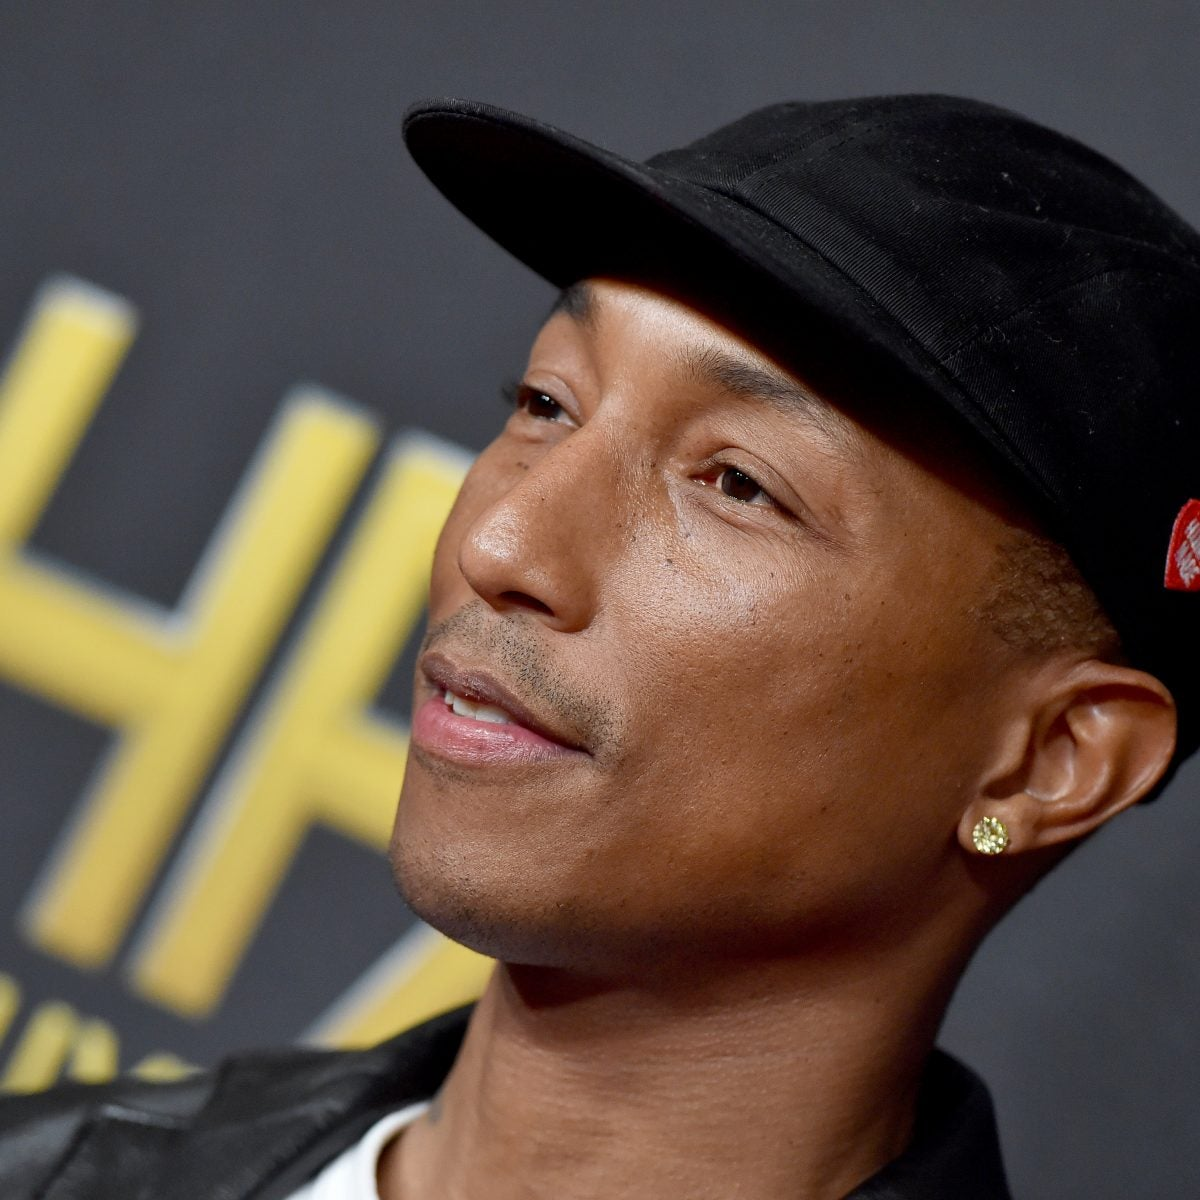 Finally, Pharrell Williams Is Launching A Skincare Line